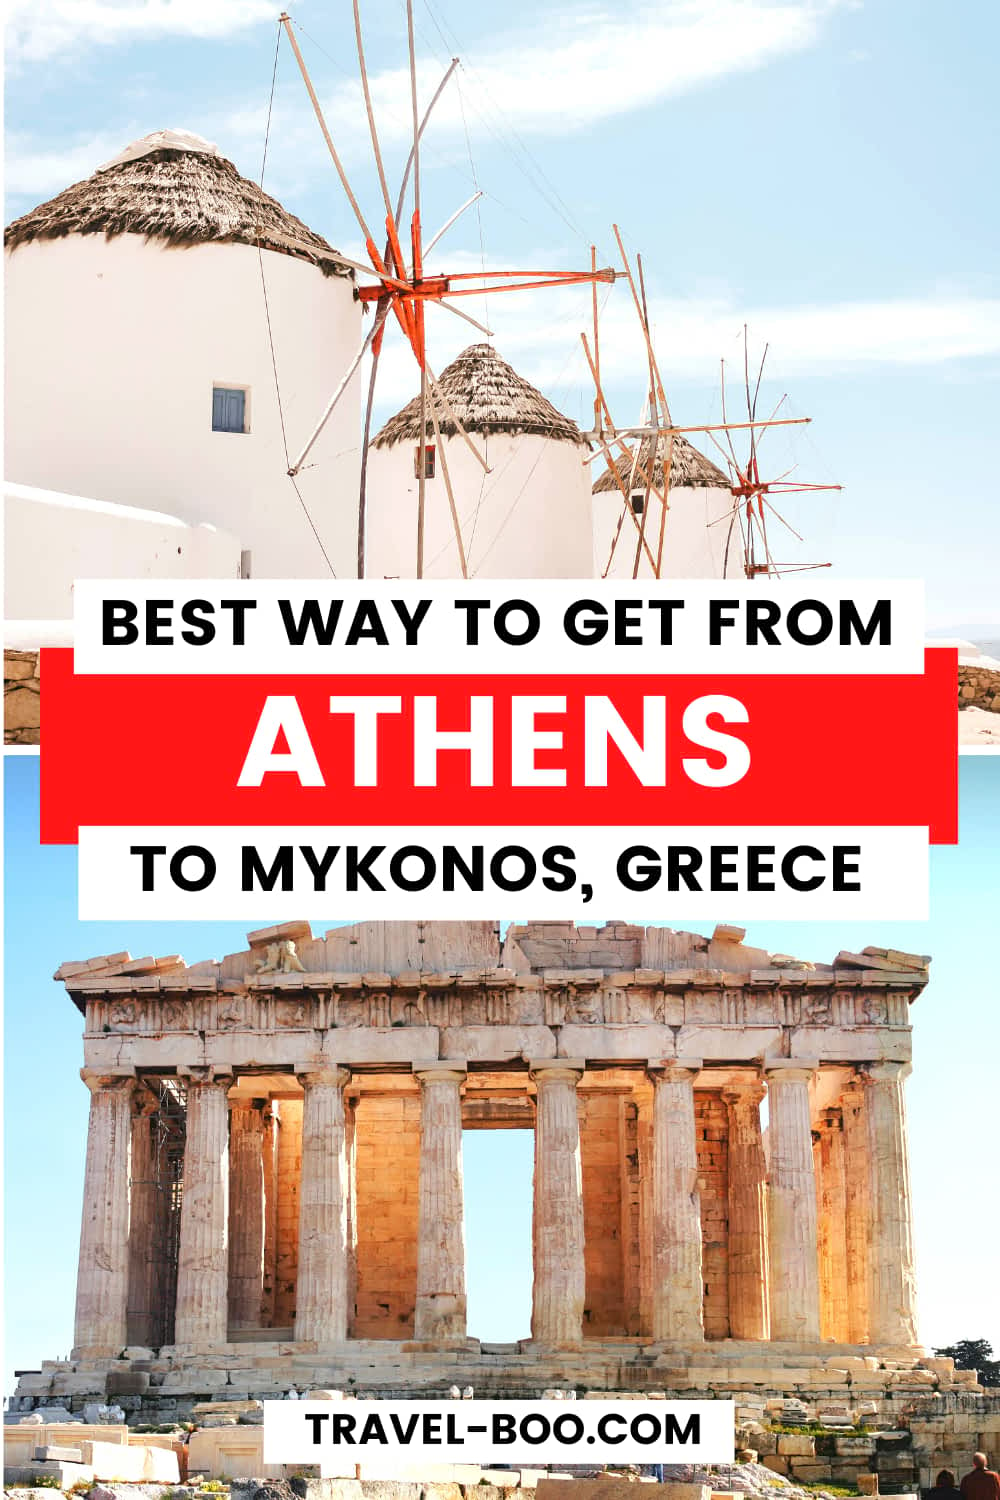 The Best Way To Get From Athens to Mykonos #greecetravel #greecetravelislands #athens #mykonos | Greece Travel | Greece Travel Guide | Greece Travel Islands | Athens Travel | Athens Travel Guide | Mykonos Travel | Mykonos Travel Guide | Europe Travel | European Travel Destinations